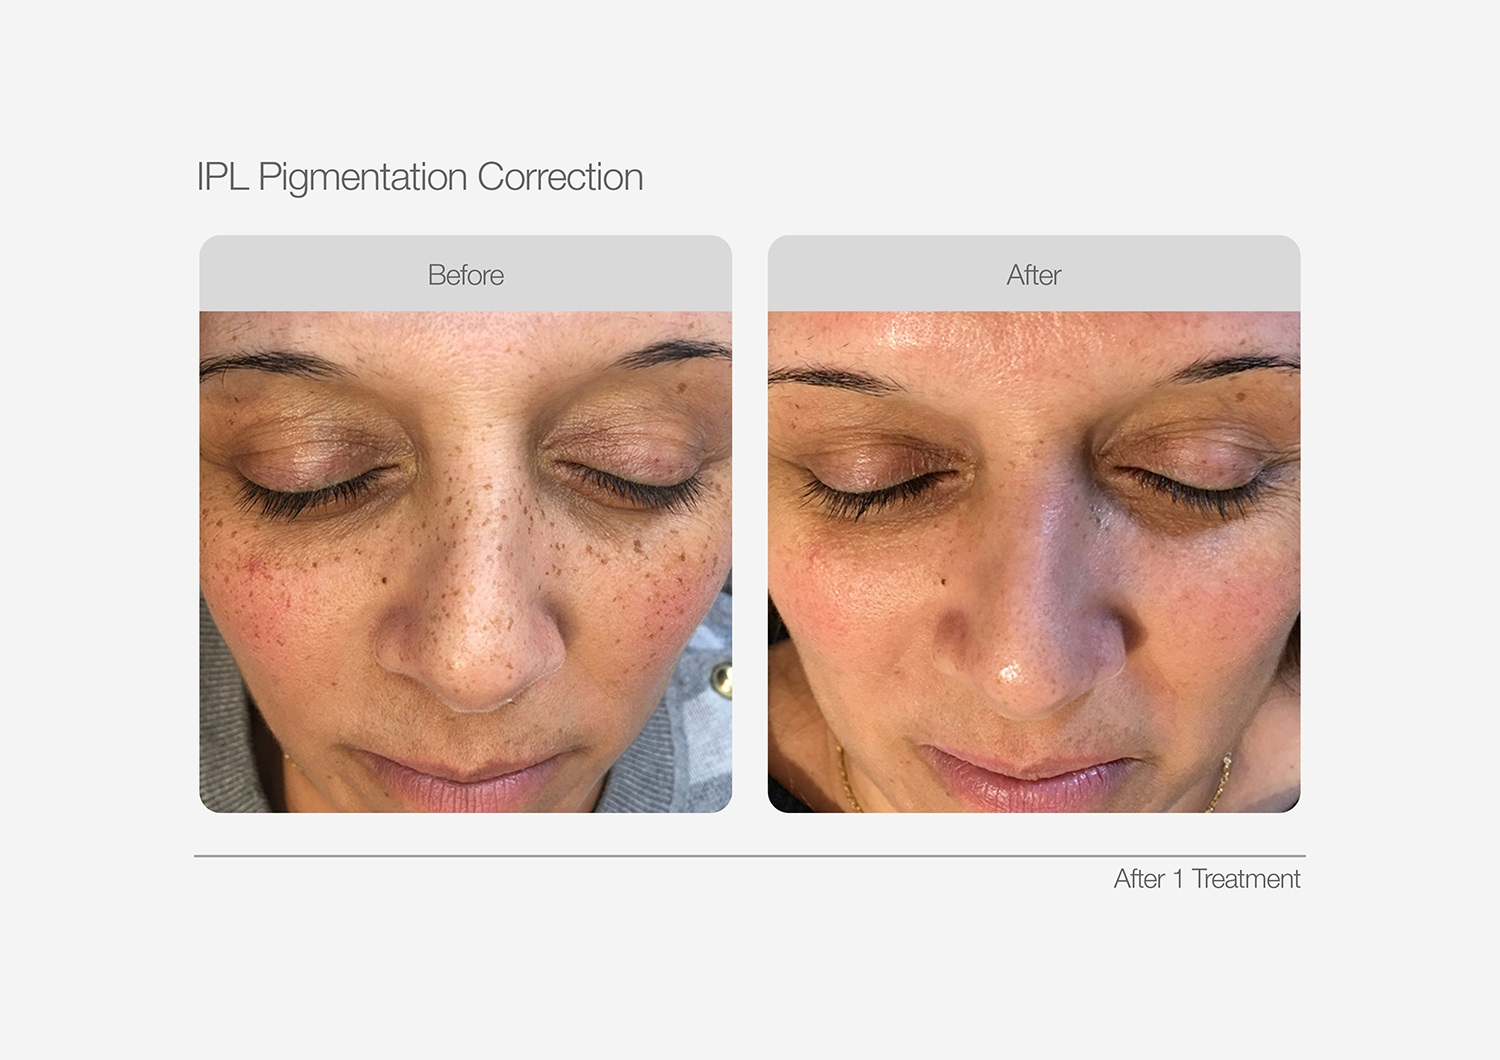 IPL-Pigmentation-Correction-Before-After-01